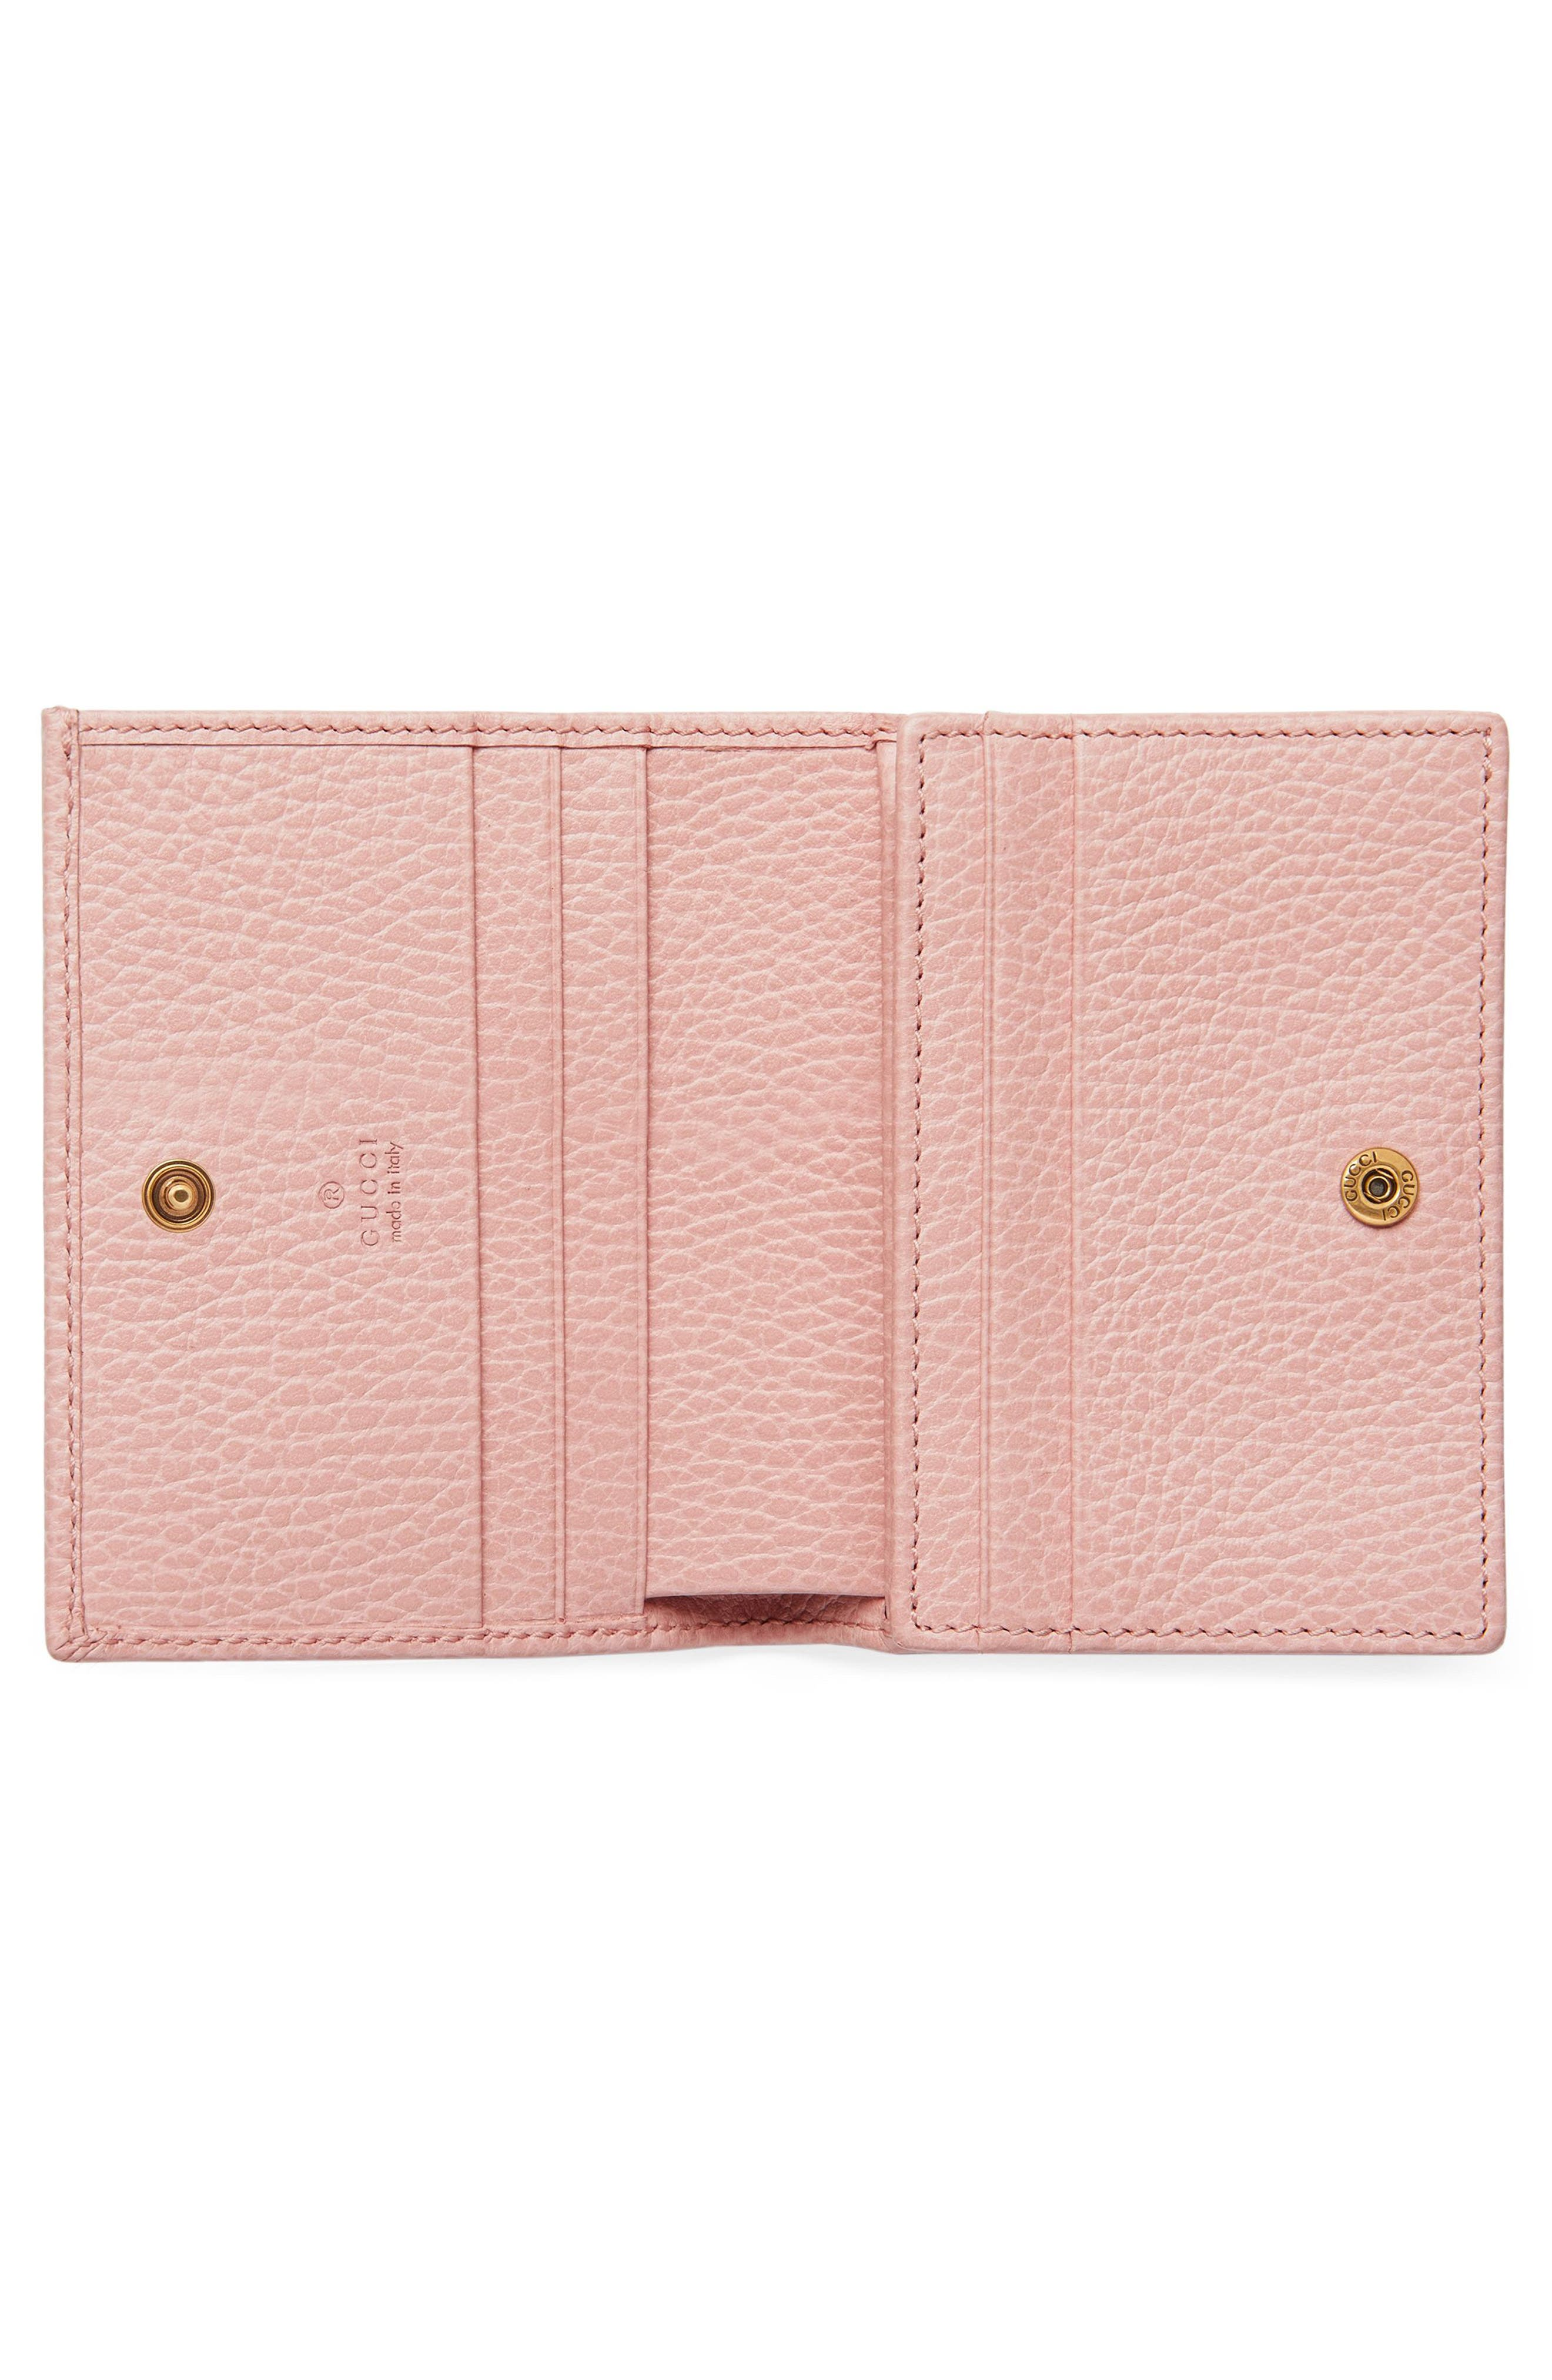 Farfalla Leather Card Case,                             Alternate thumbnail 4, color,                             PERFECT PINK/ CRYSTAL